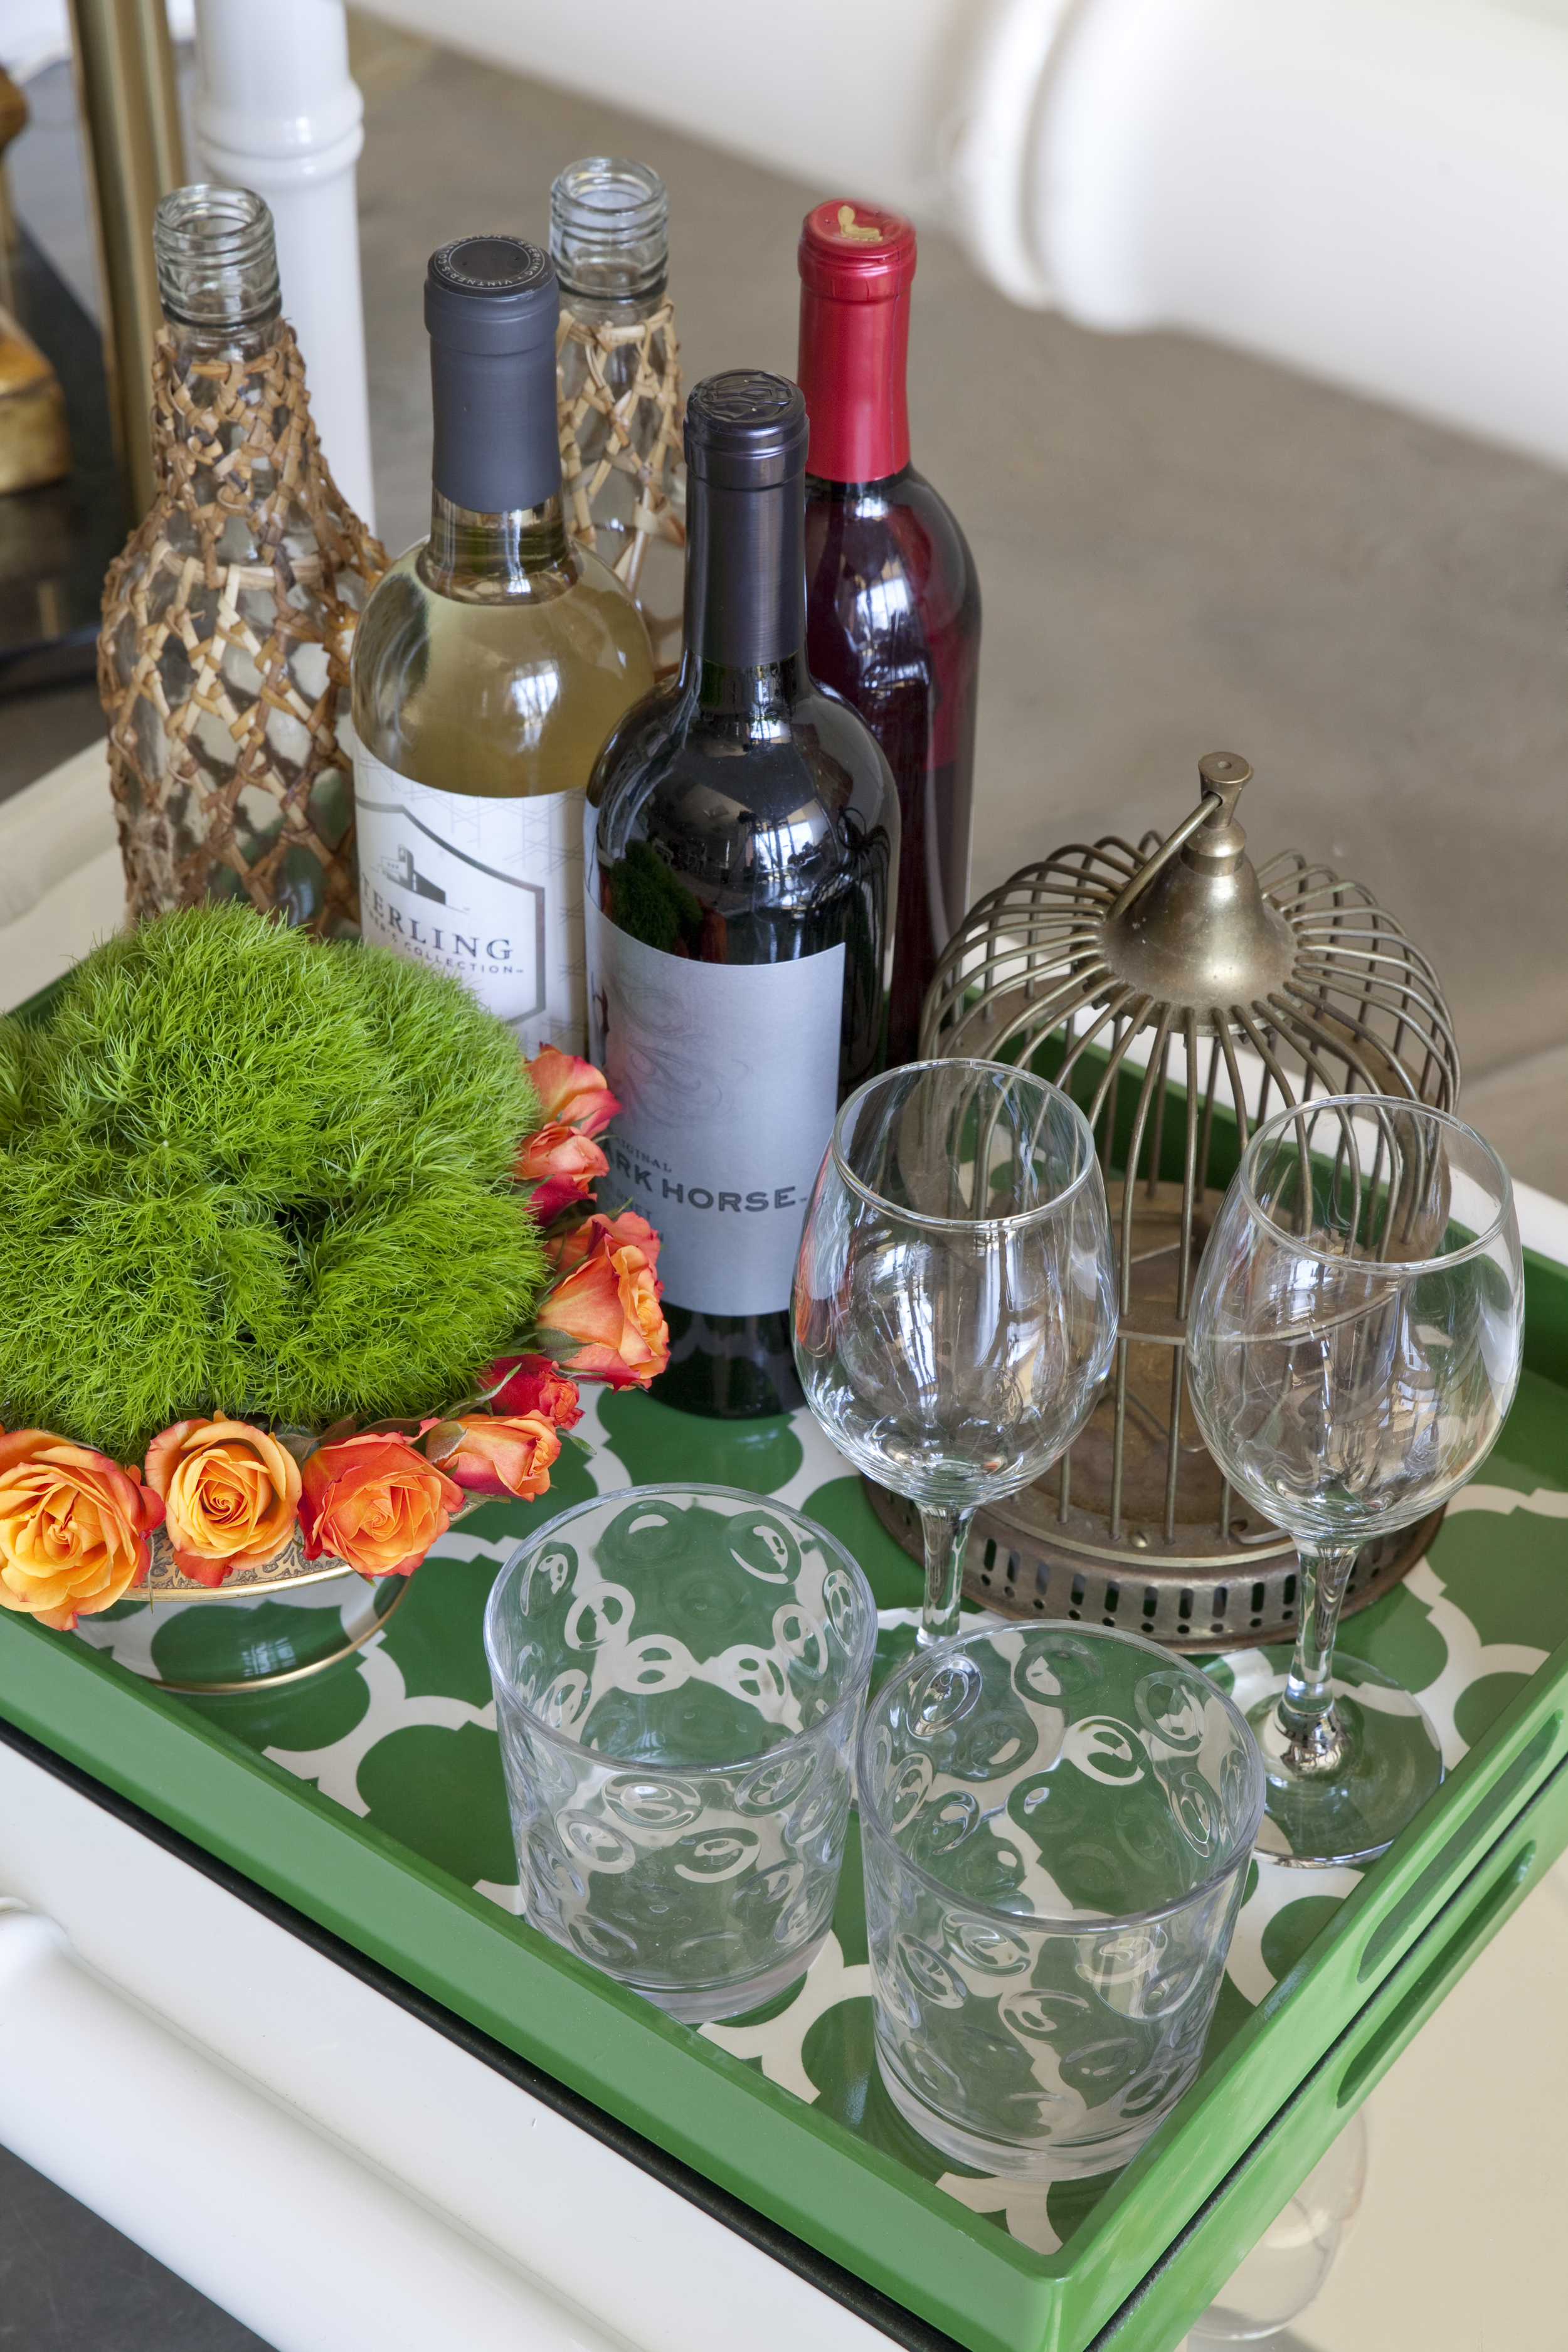 Photo by Christina Wedge, Bar Cart Styling by Susie Roupe